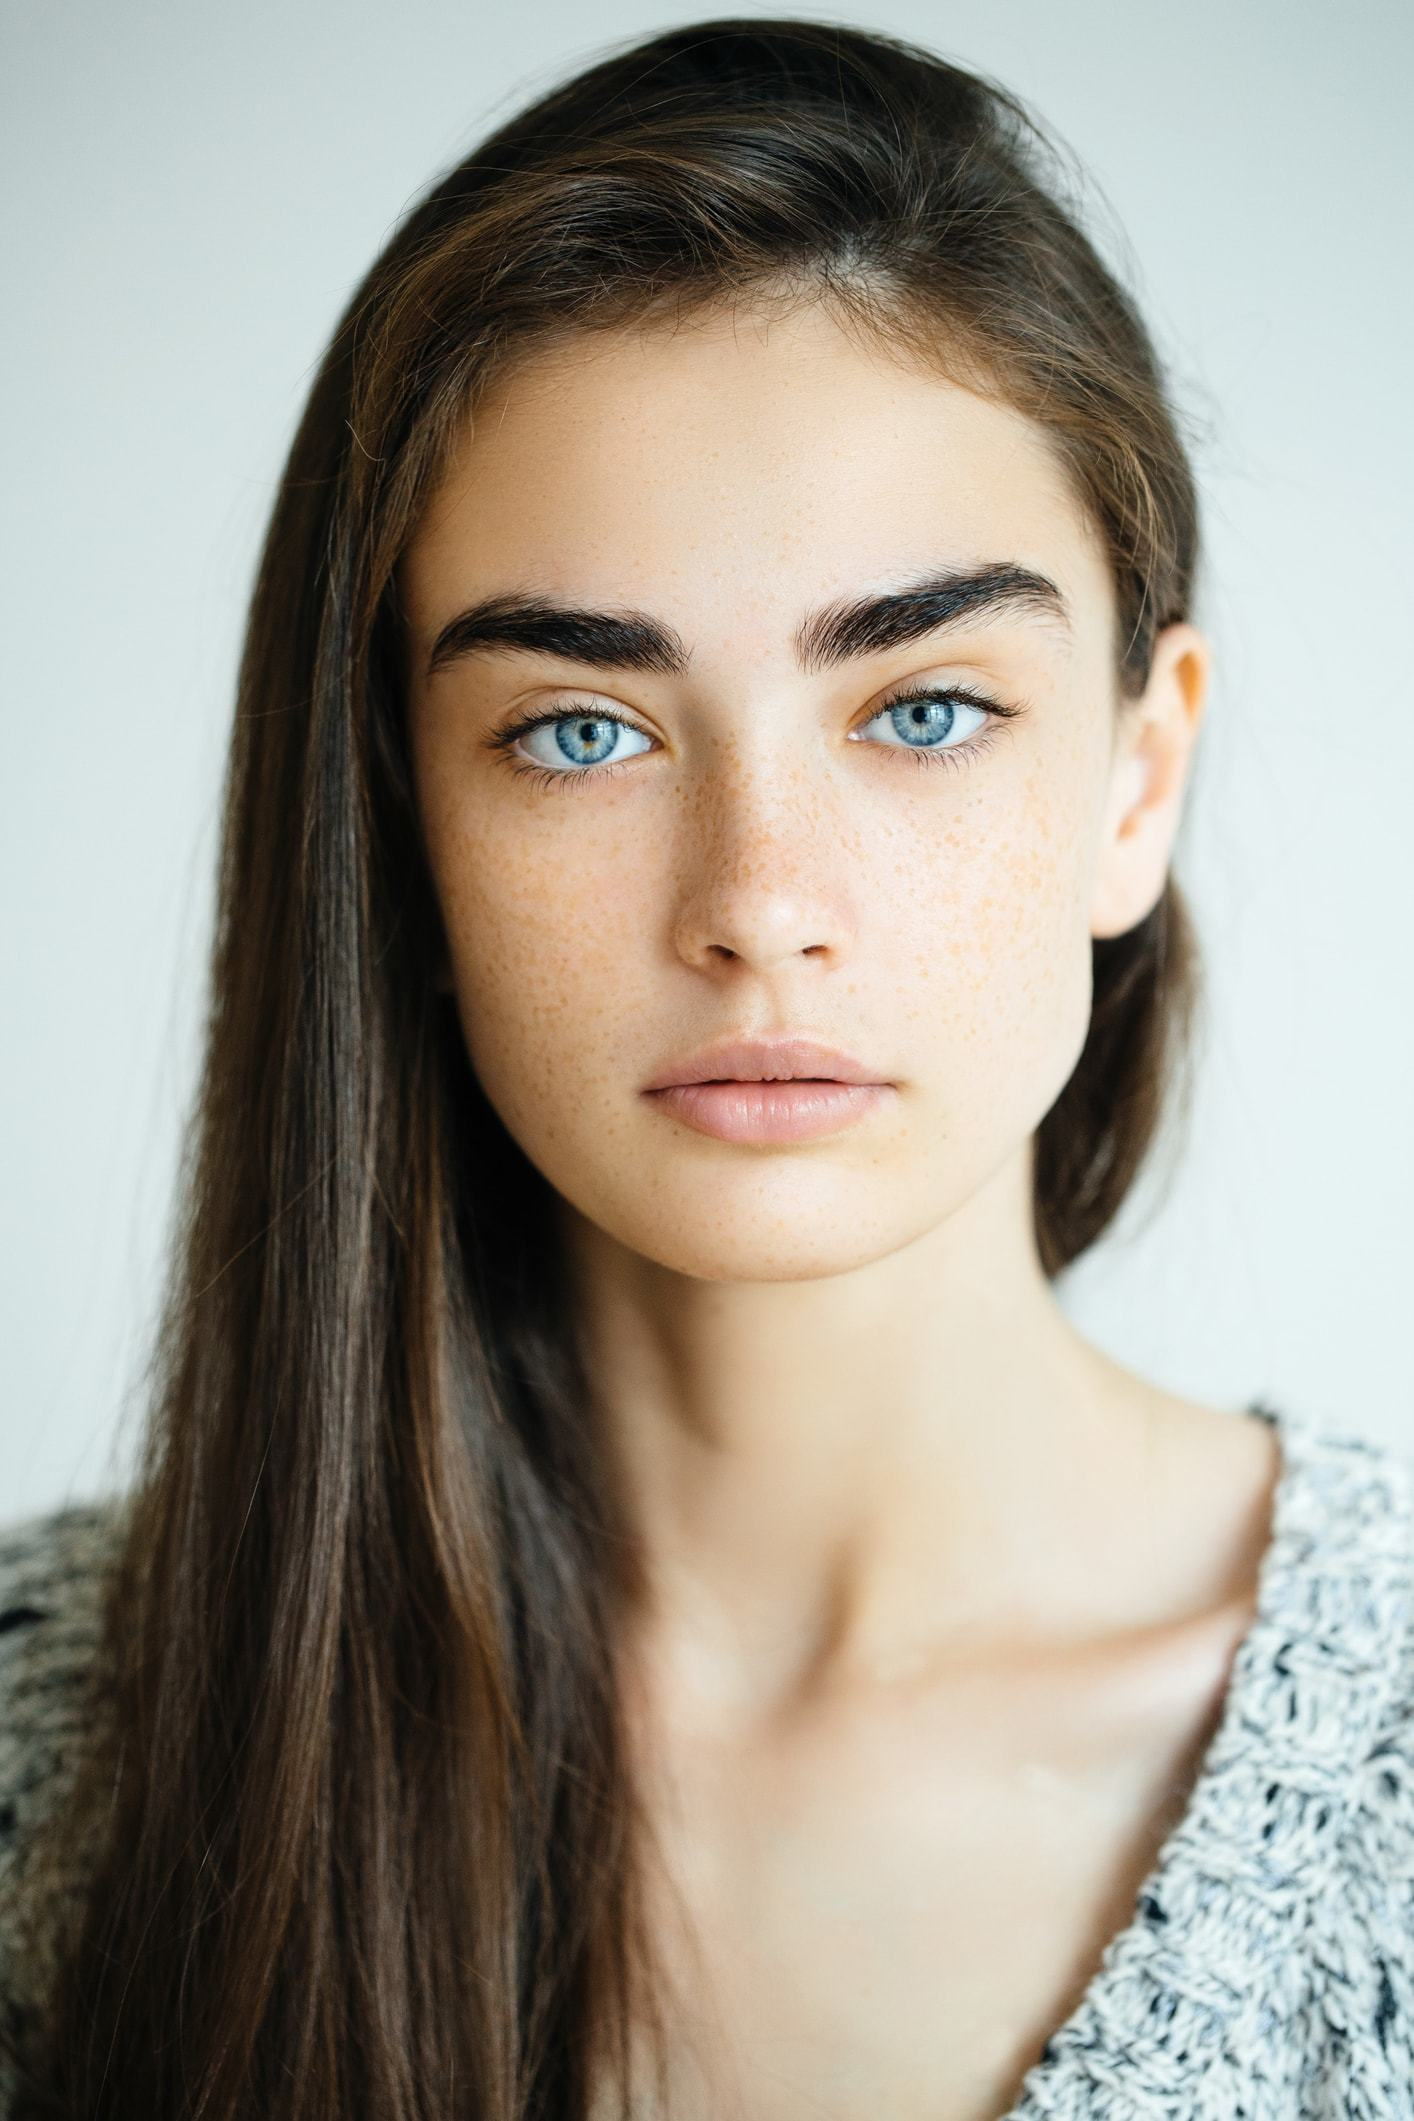 Female Brown Haired Women With Blue Eyes Can Look Gorgeous With Some Great Design Ideas